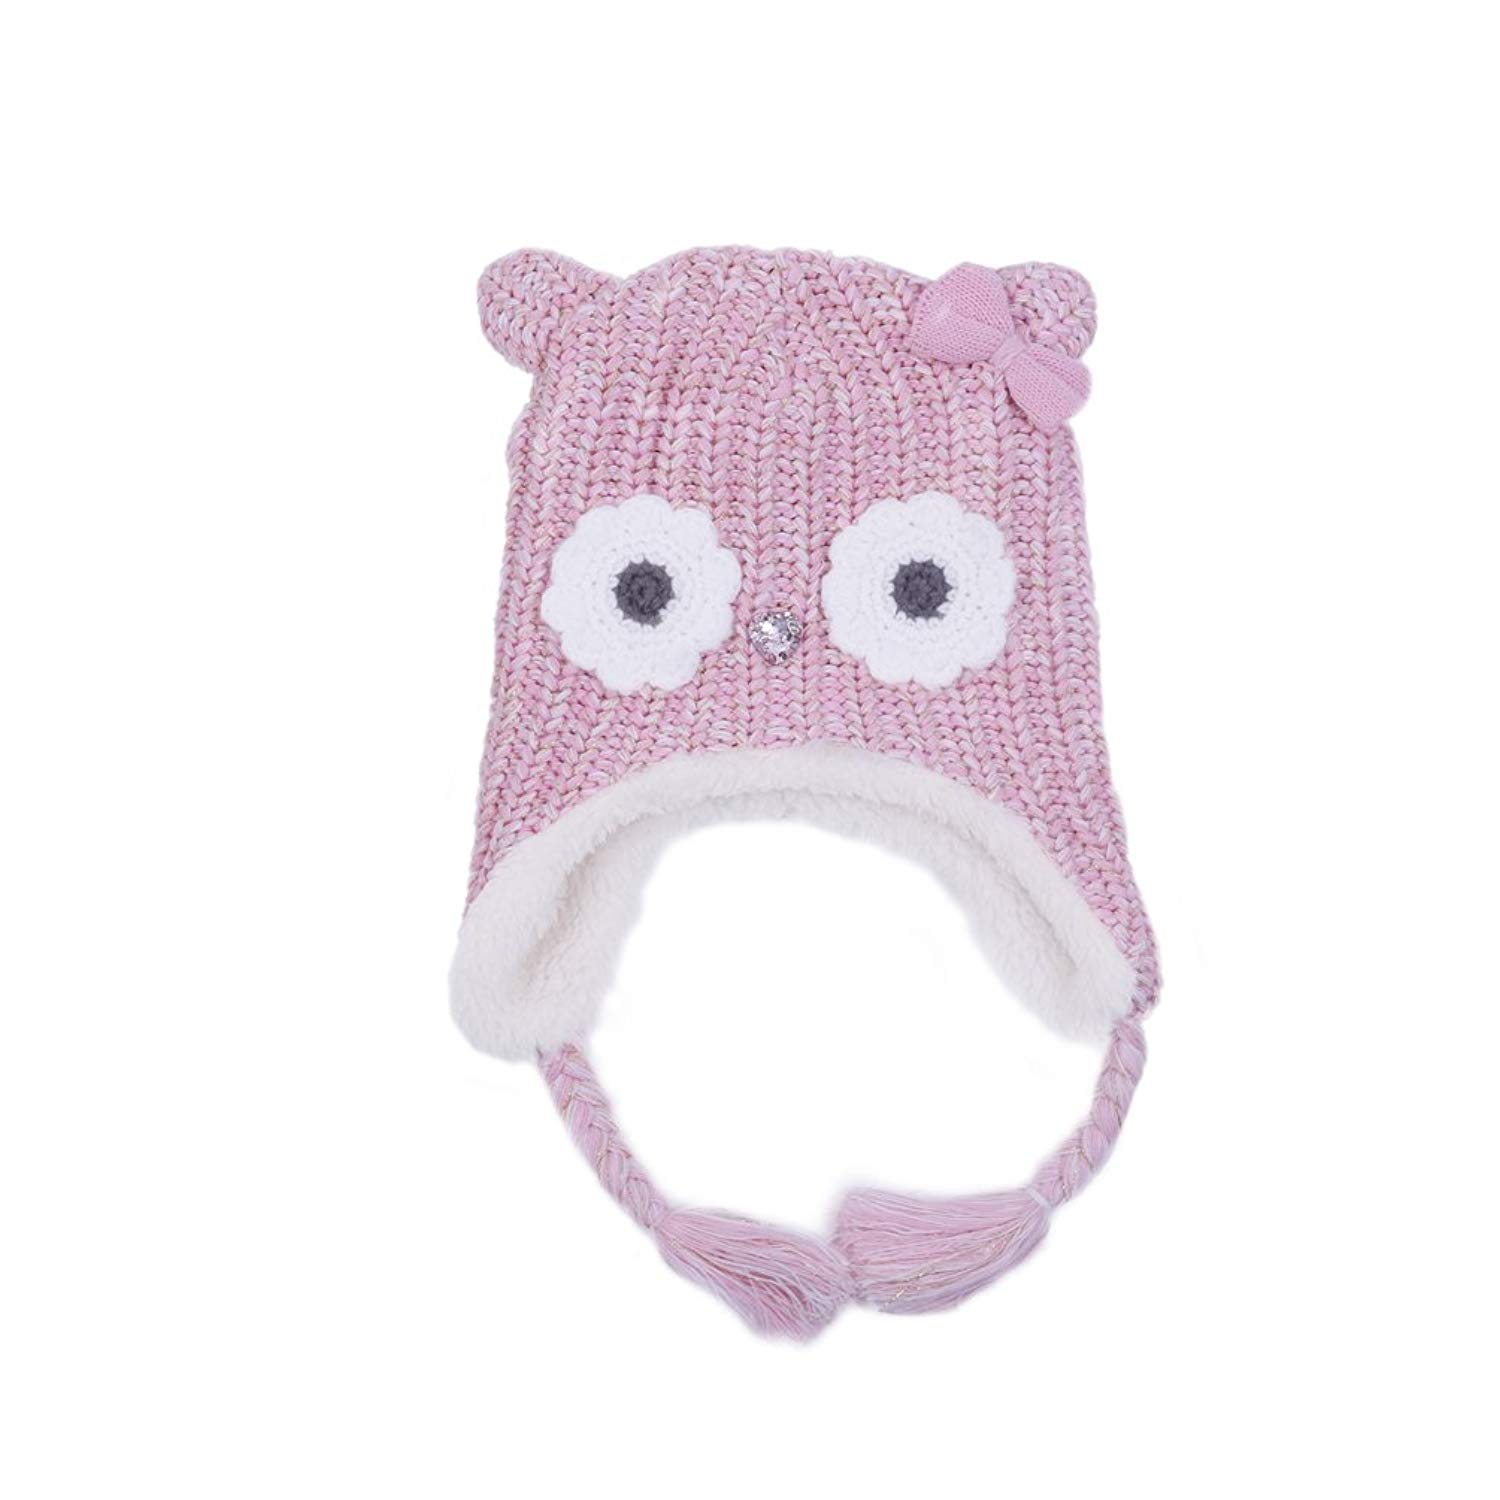 9532a8ca96f03 Get Quotations · LoveKids Girls and Boys Sherpa Lined Fleece Hat Earflap